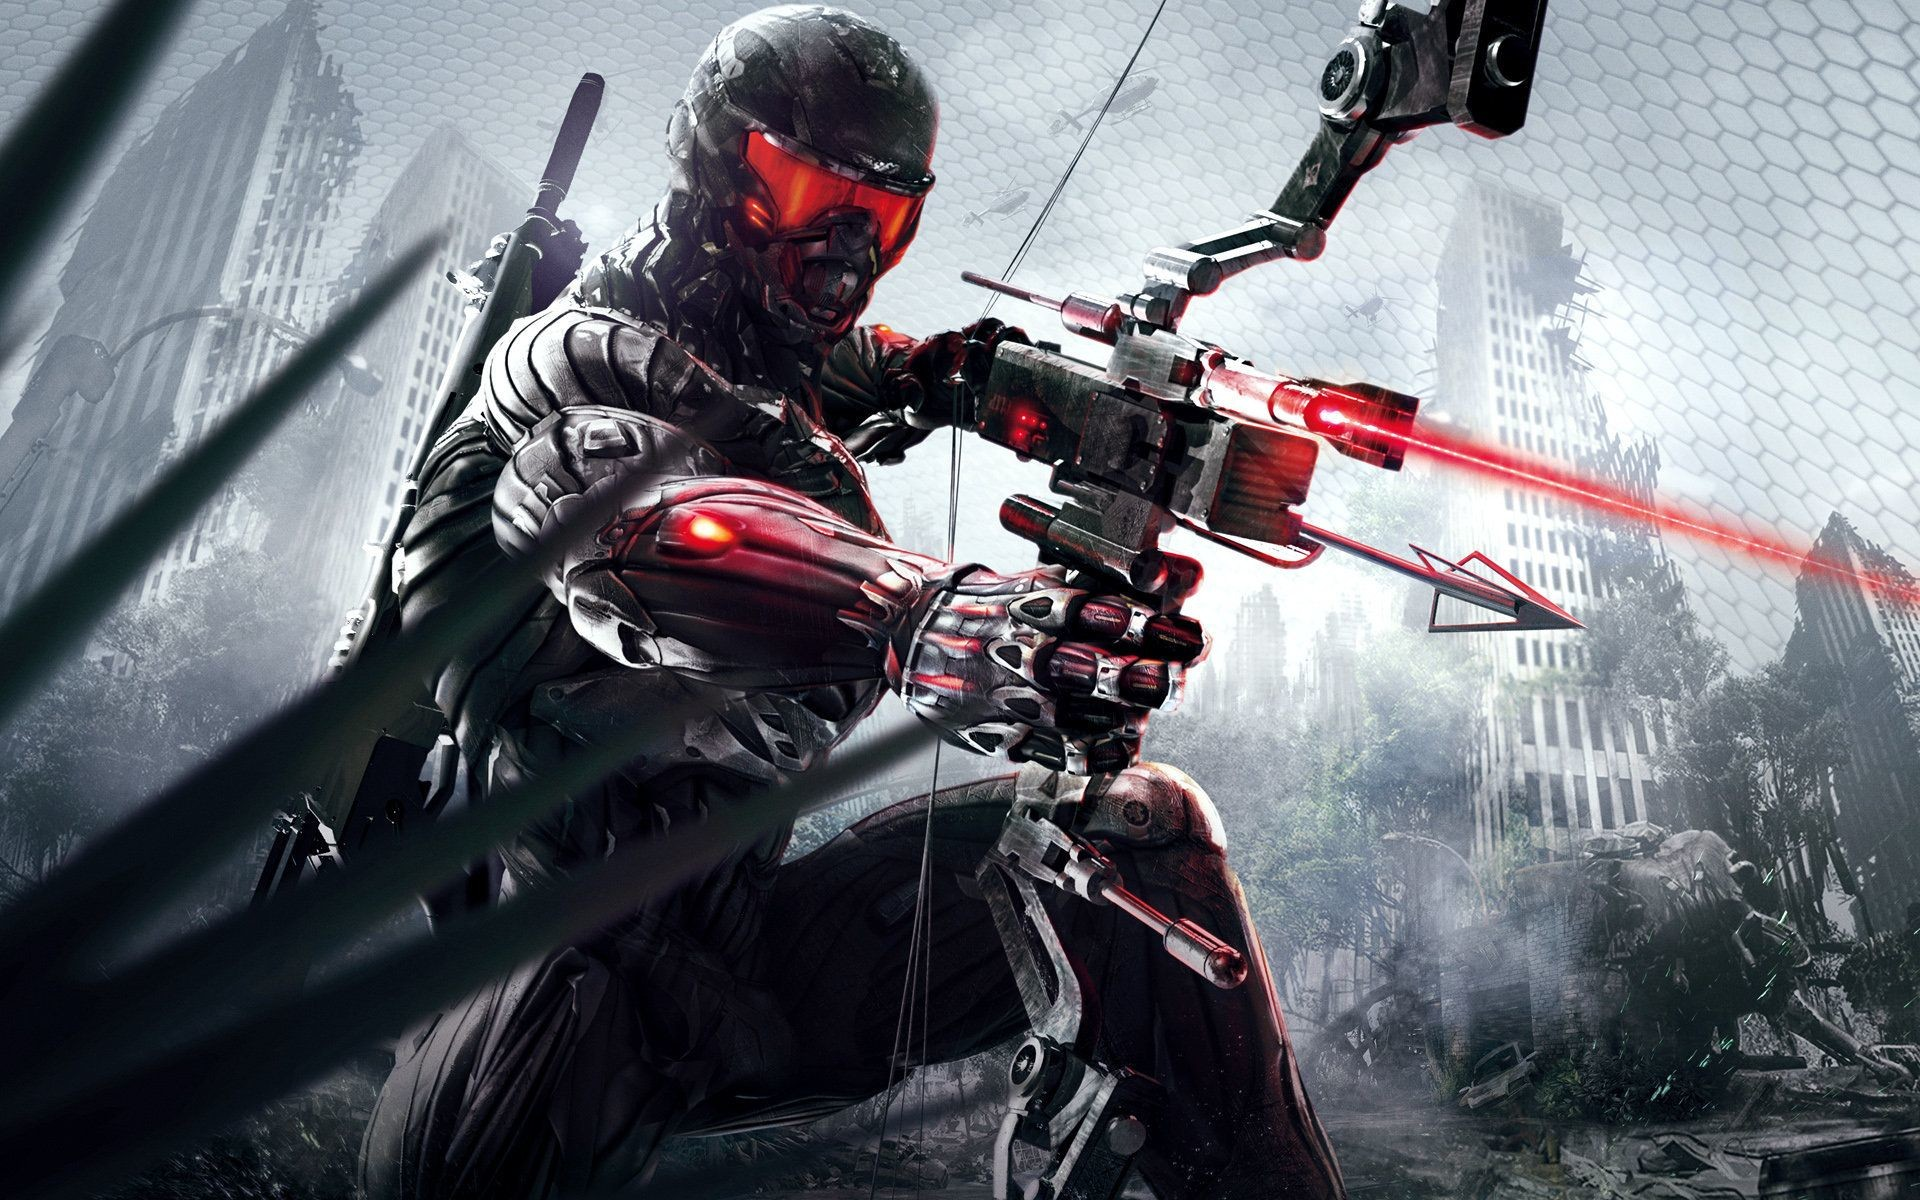 1920x1200 Crysis 3 Wallpapers - Full HD wallpaper search